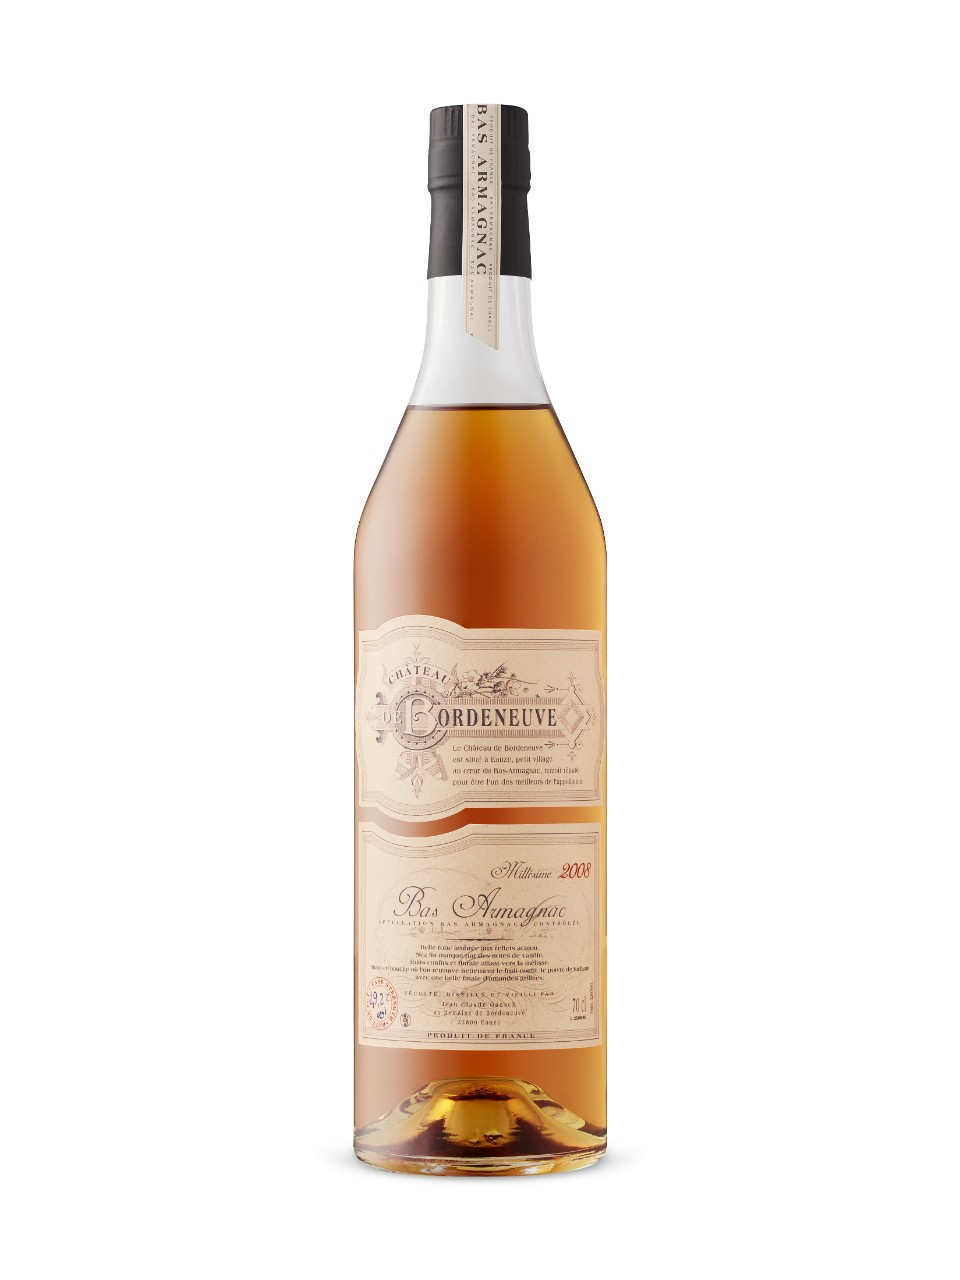 Chateau de Bordeneuve Armagnac 2008 from LCBO